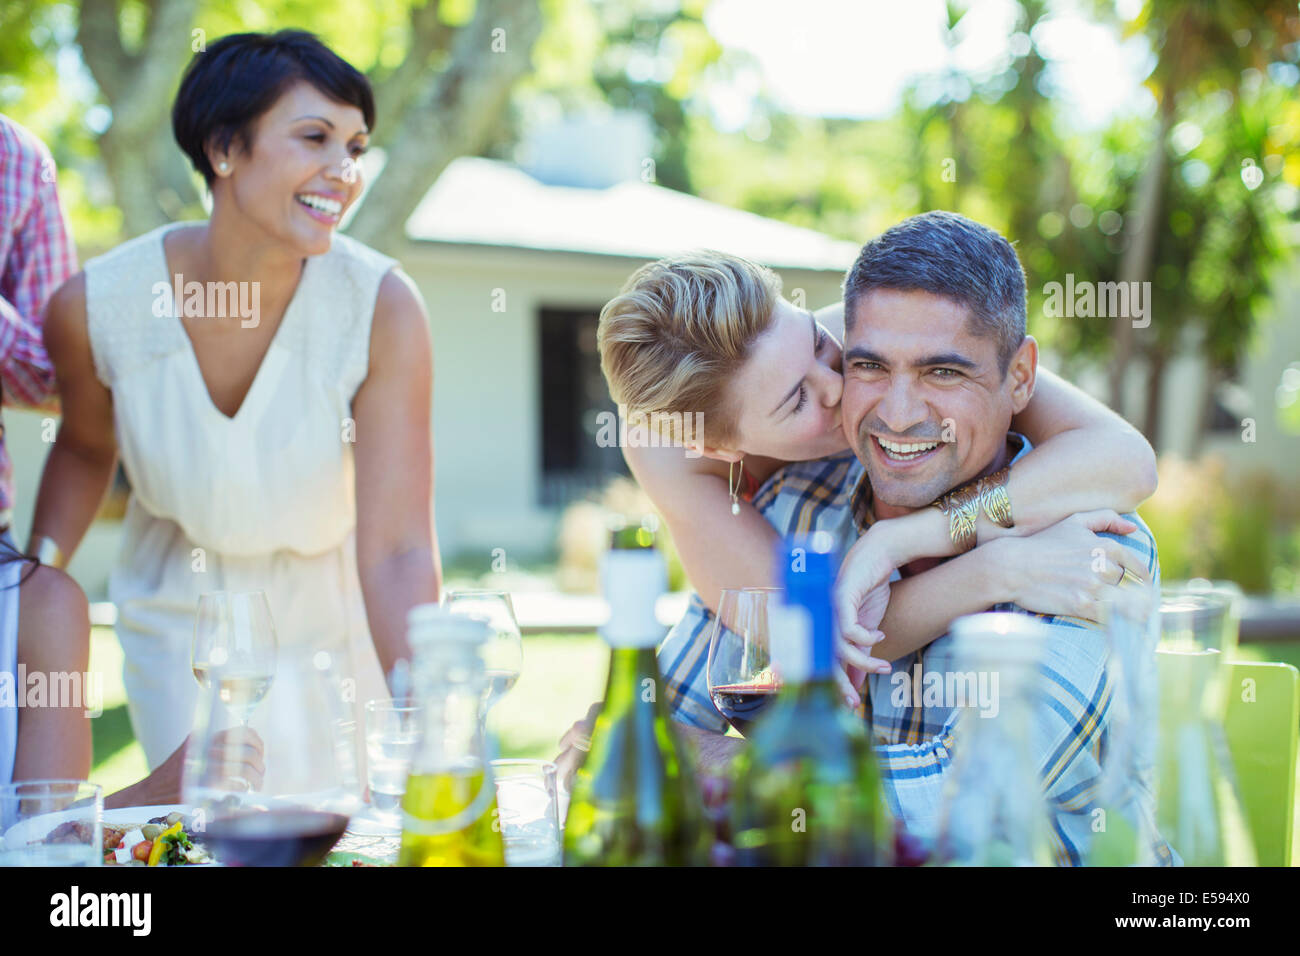 Couple kissing at table outdoors Photo Stock